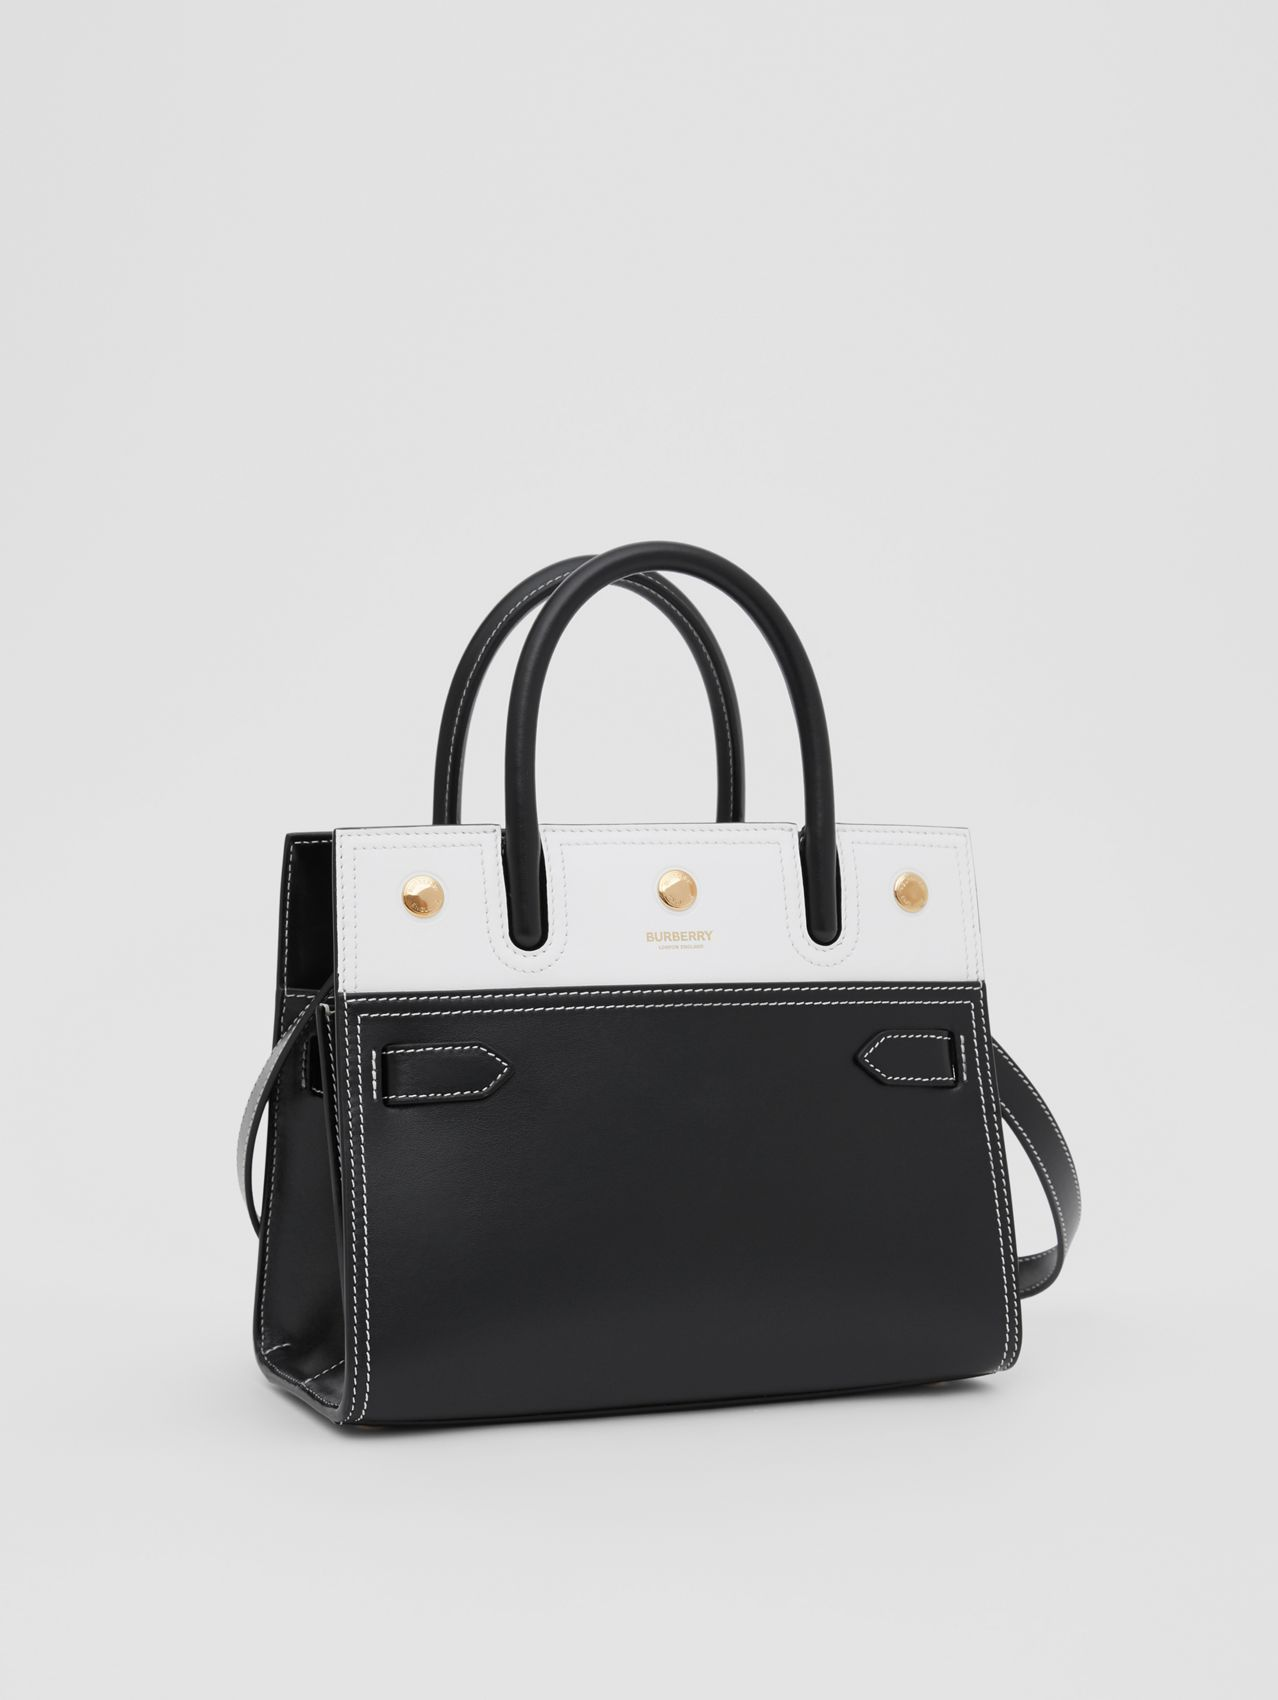 Mini Leather Two-handle Title Bag in Black/white